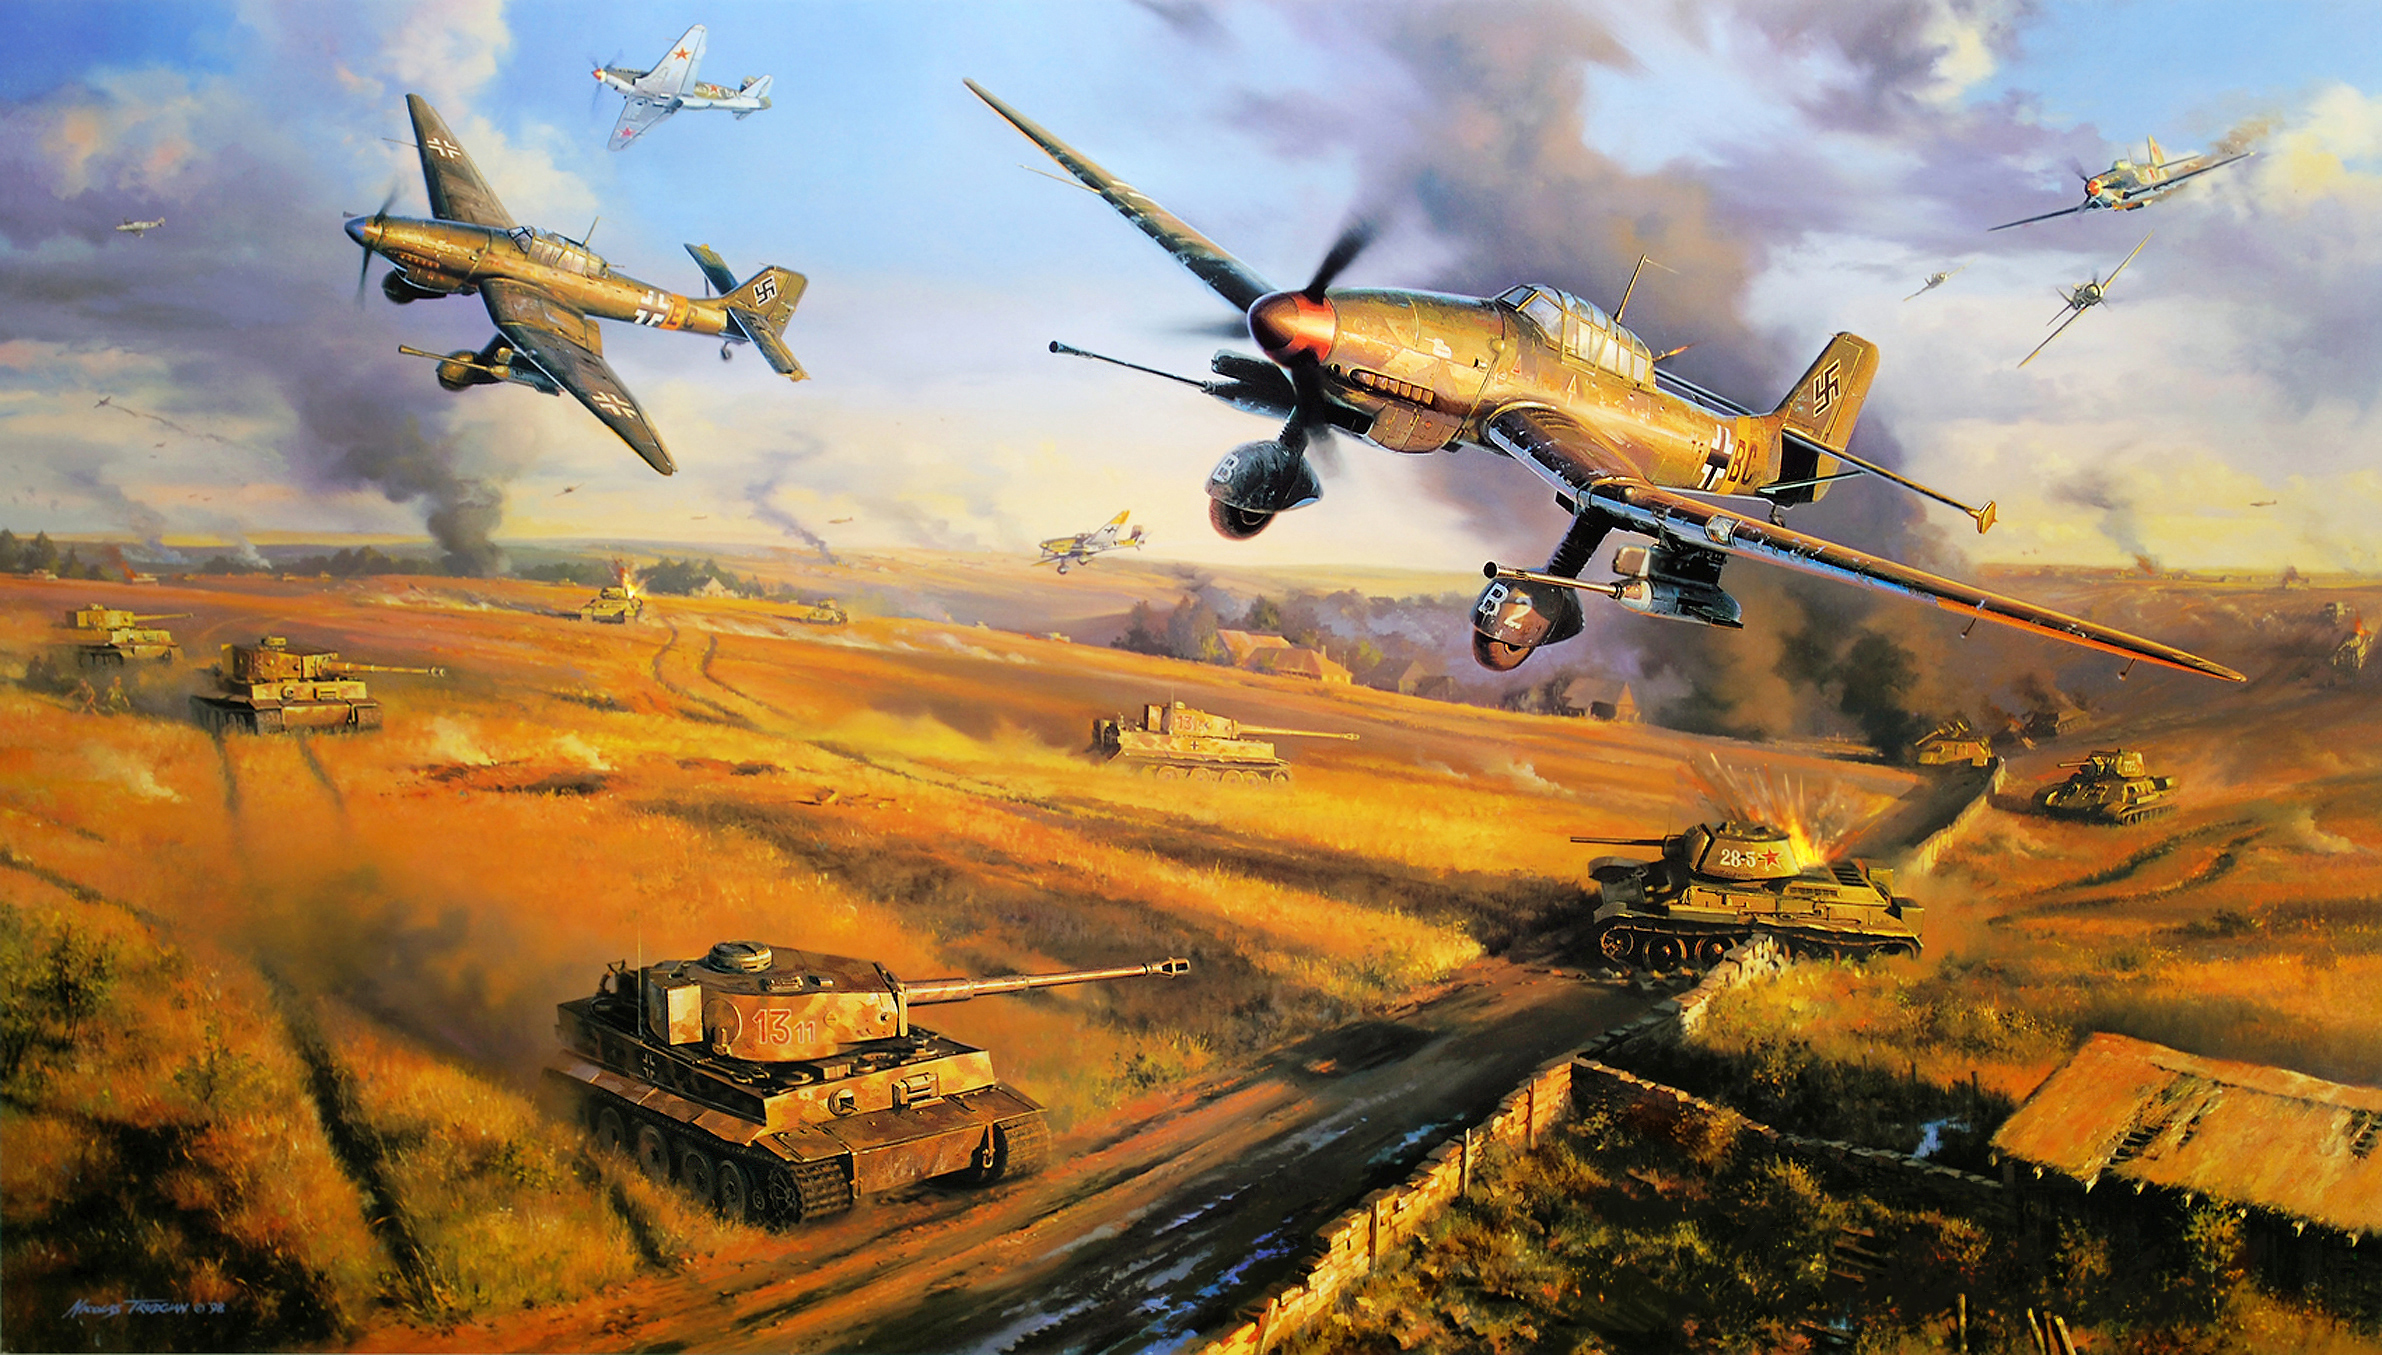 Drawn aircraft ww2 airplane WINGS Aircraft 87 Military painting